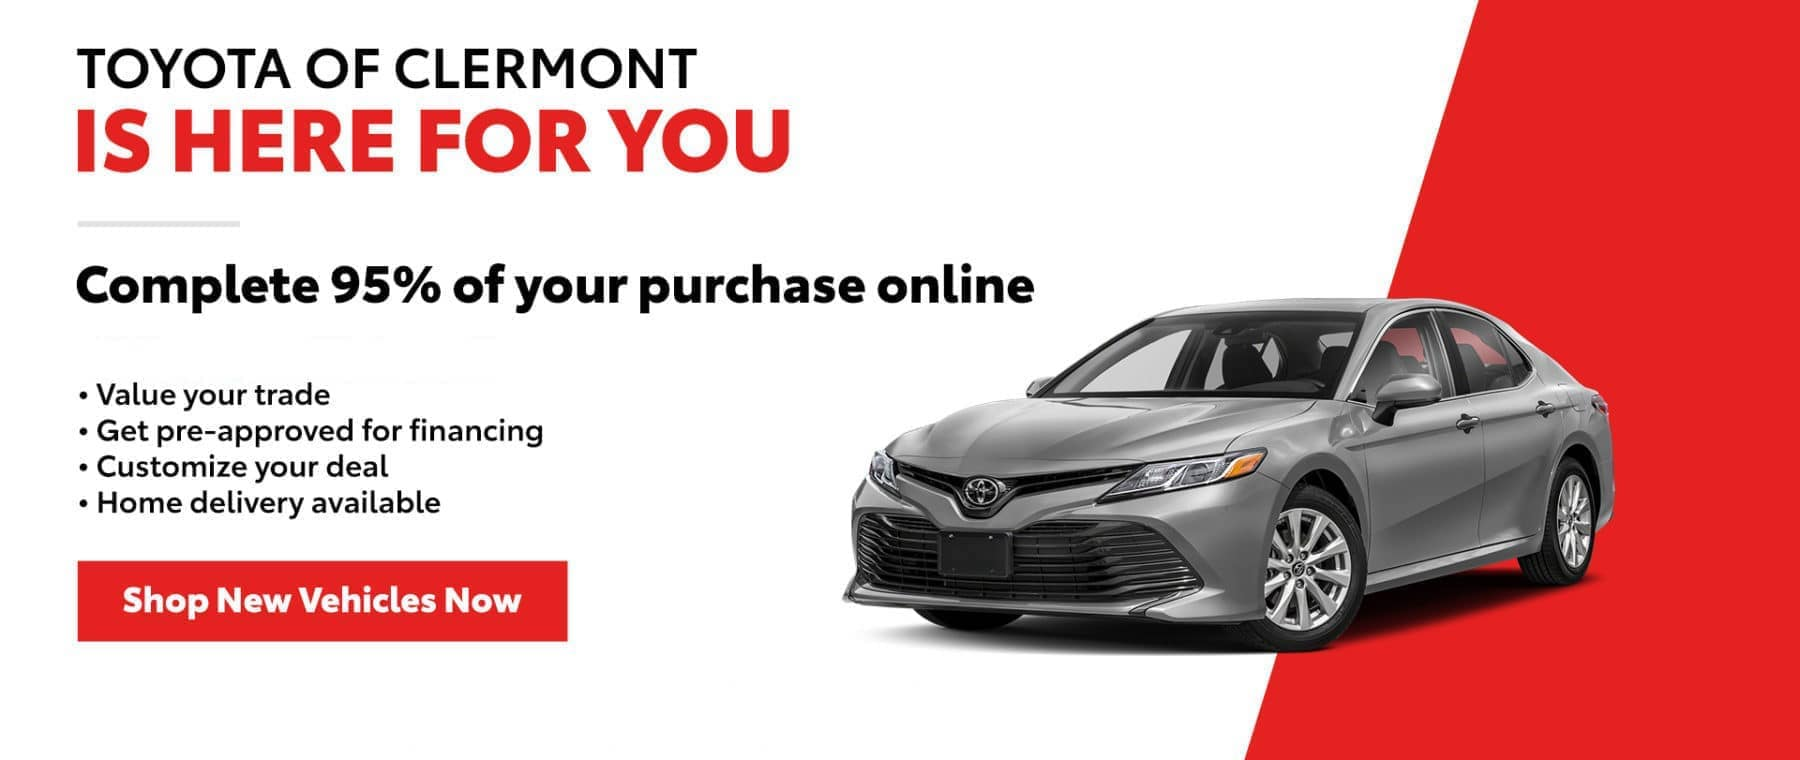 Toyota of Clermont